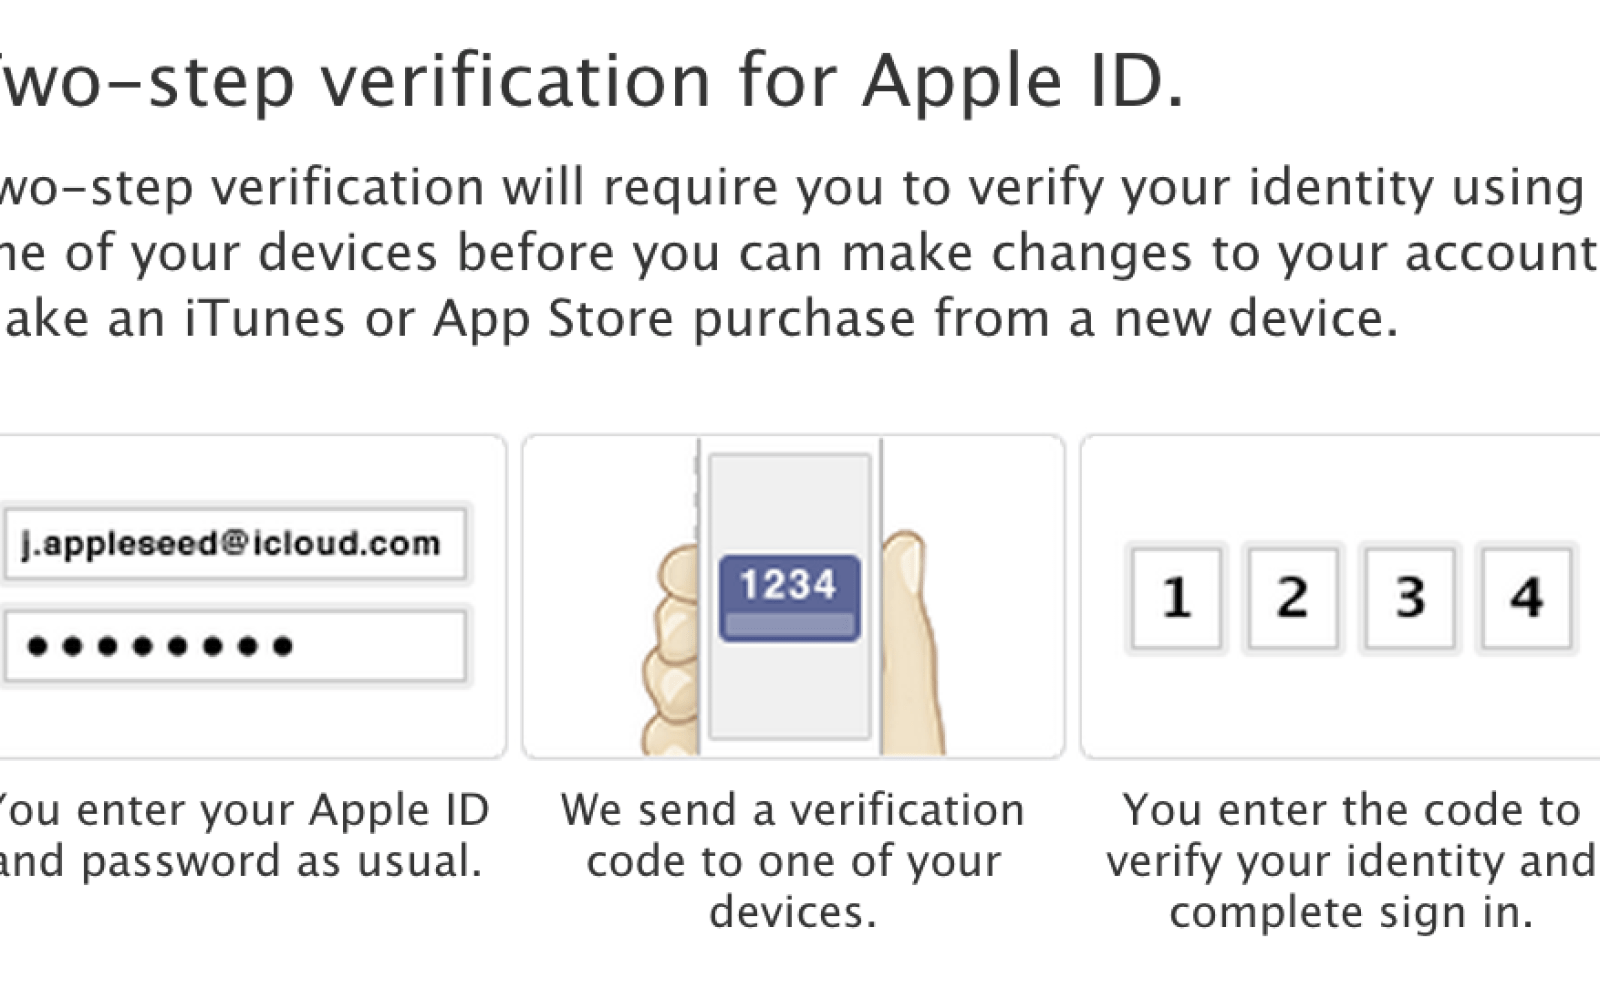 Apple's two-step verification rolling out to additional countries: Canada, Argentina, Netherlands, Russia, Mexico, Poland, Brazil, more